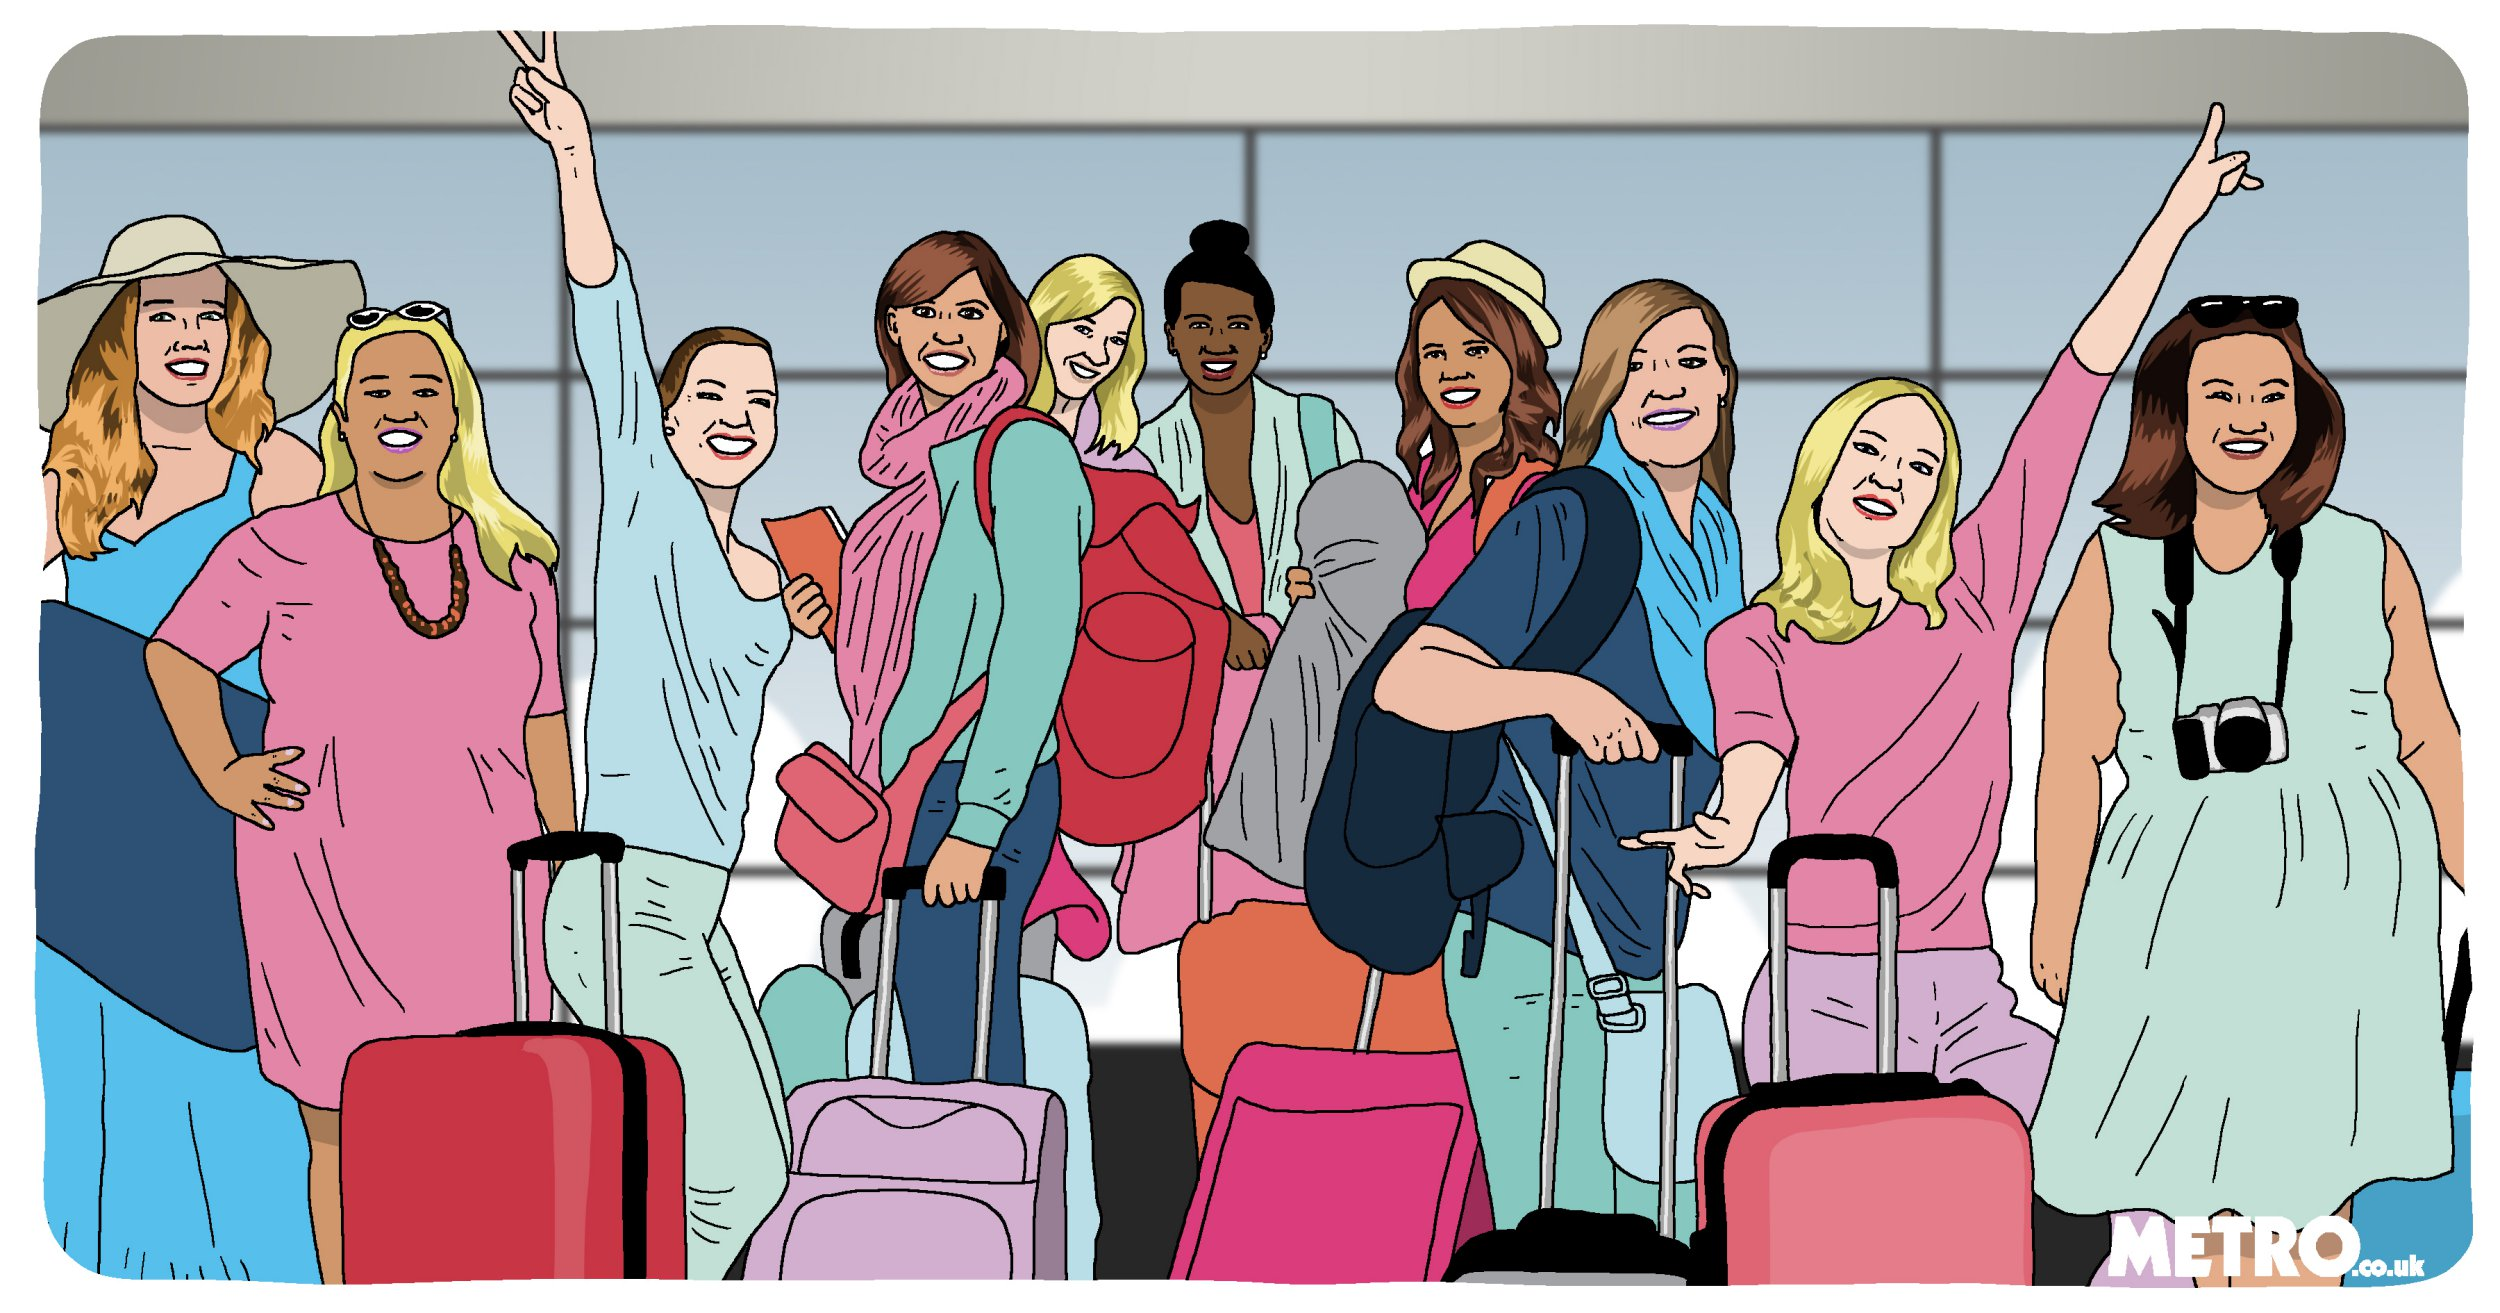 Metro Illustrations Metro Illustration How to survive a girl's holiday Dave Anderson for Metro.co.uk